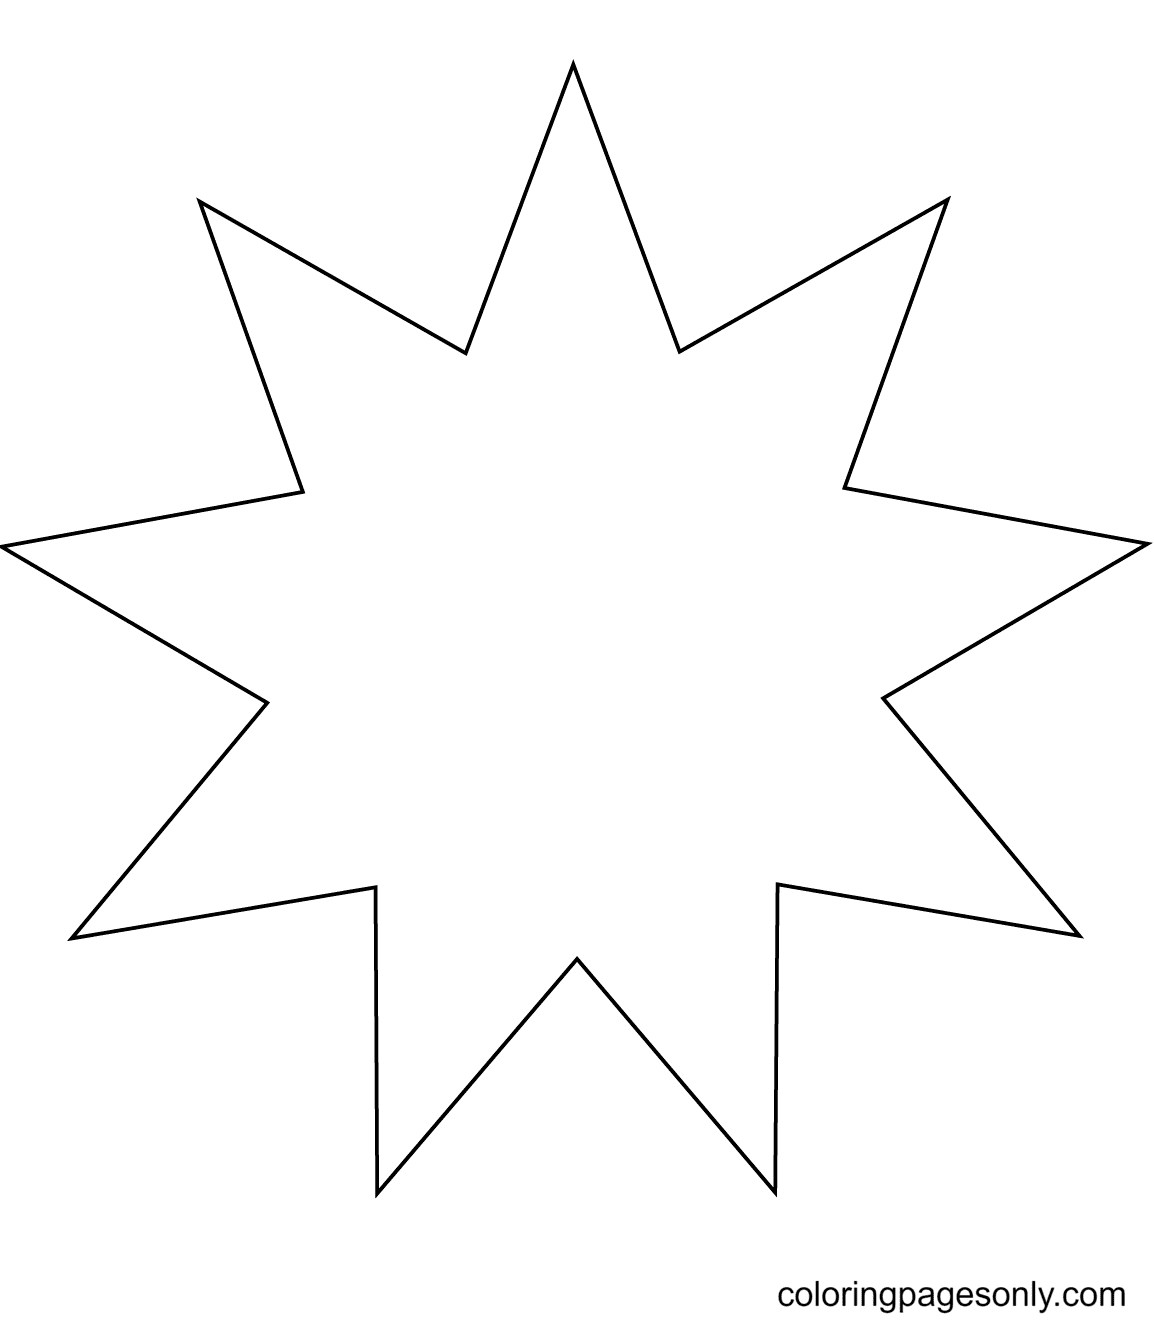 Nine Pointed Star Coloring Page